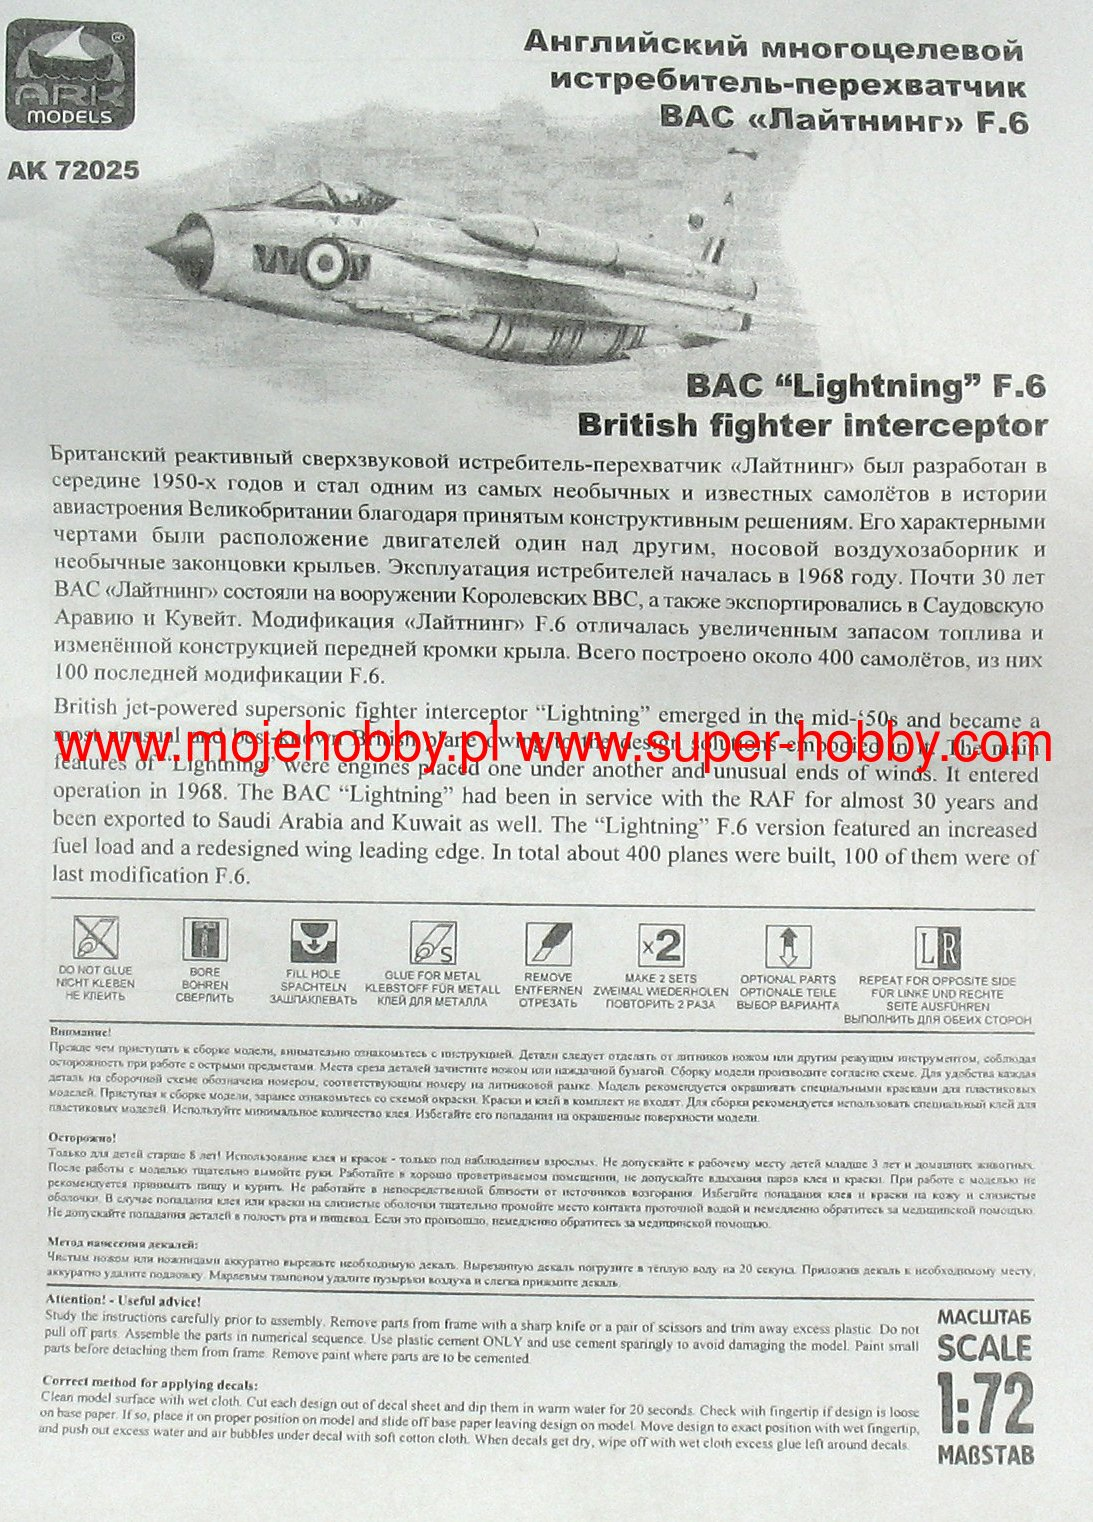 bac lightning f 6 british fighter interceptor ark models 72025. Black Bedroom Furniture Sets. Home Design Ideas